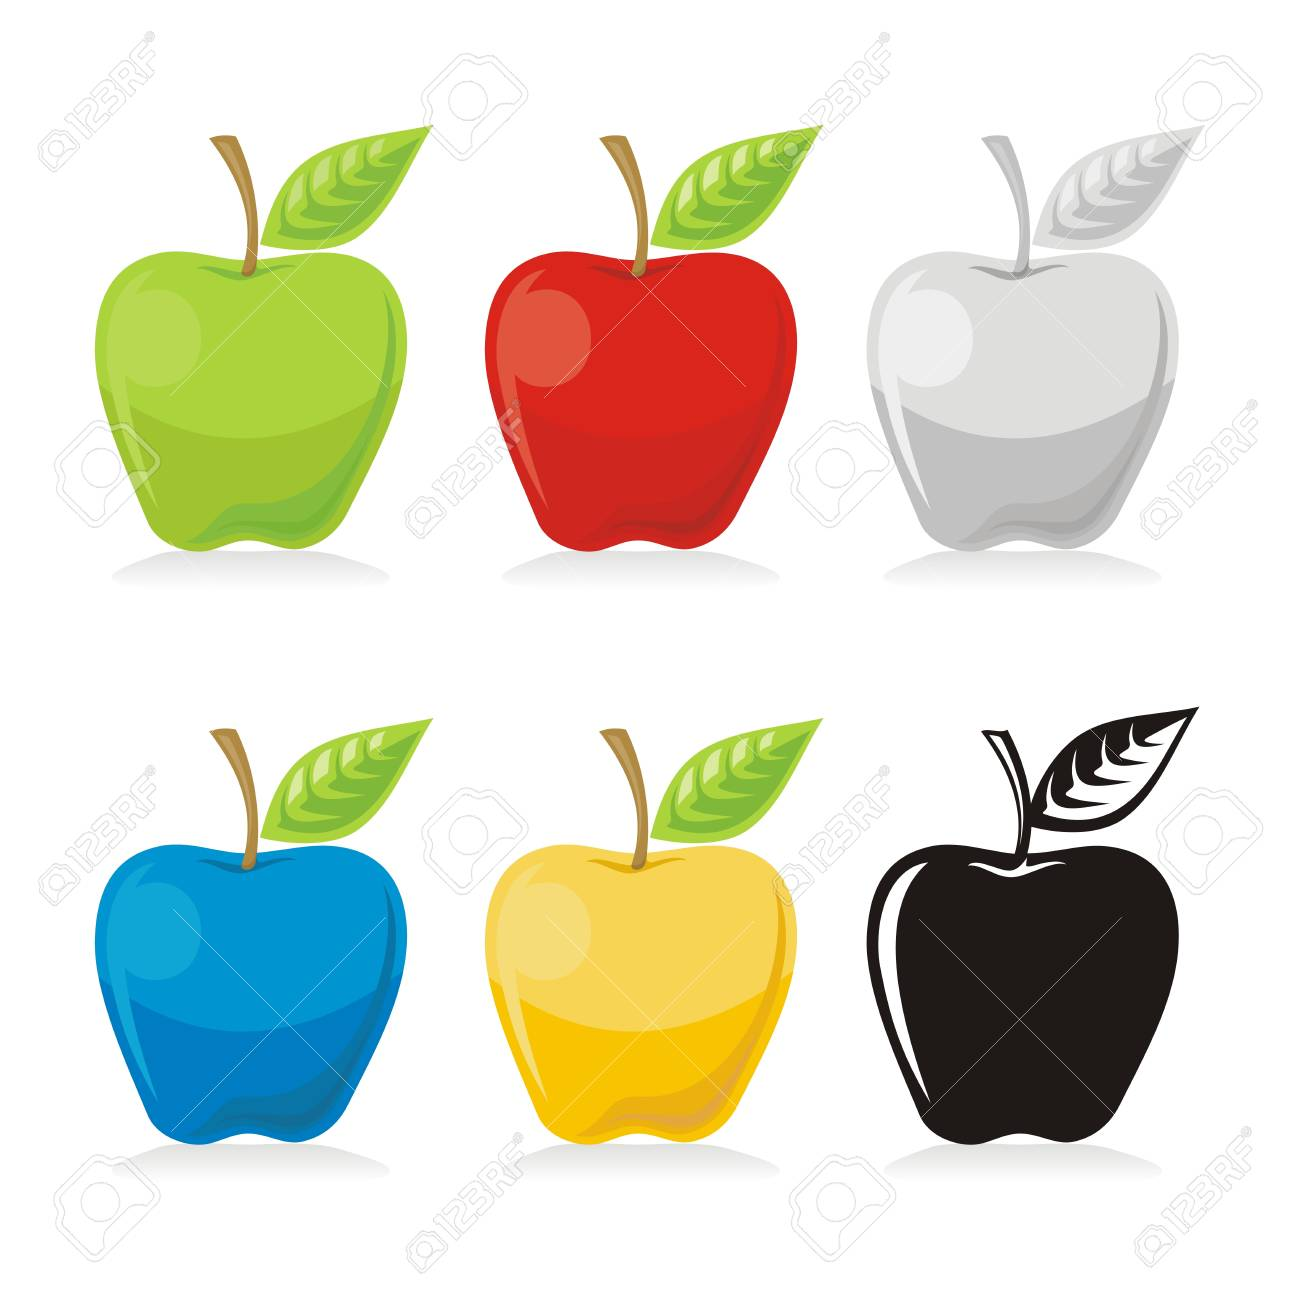 Apple with leaf icon in colored versions isolated on white background. - 13863579